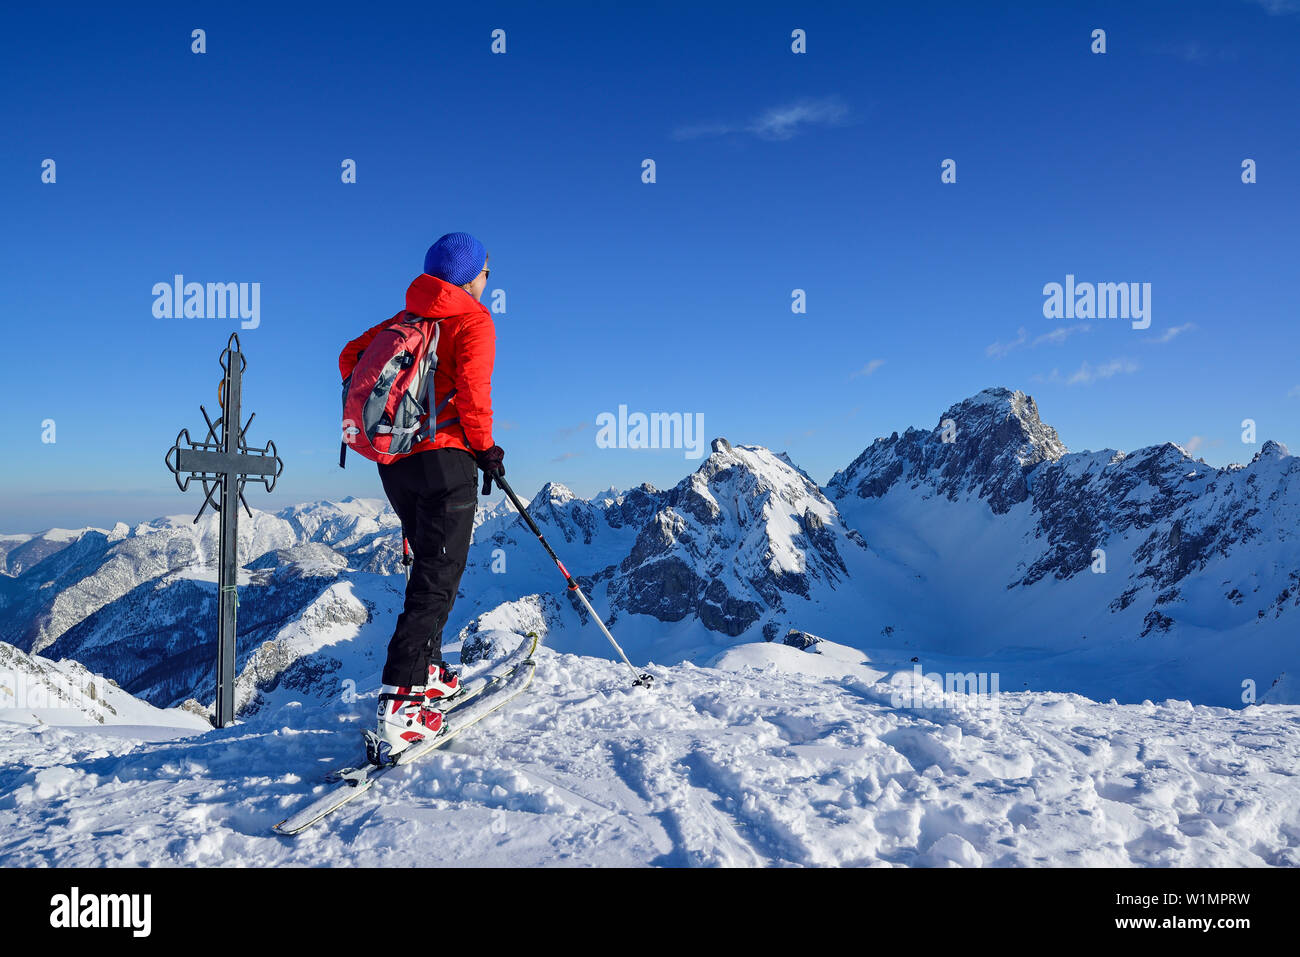 Woman back-country skiing standing at summit of Monte Soubeyran and looking towards Aiguille Jean Coste, Monte Soubeyran, Valle Maira, Cottian Alps, P - Stock Image